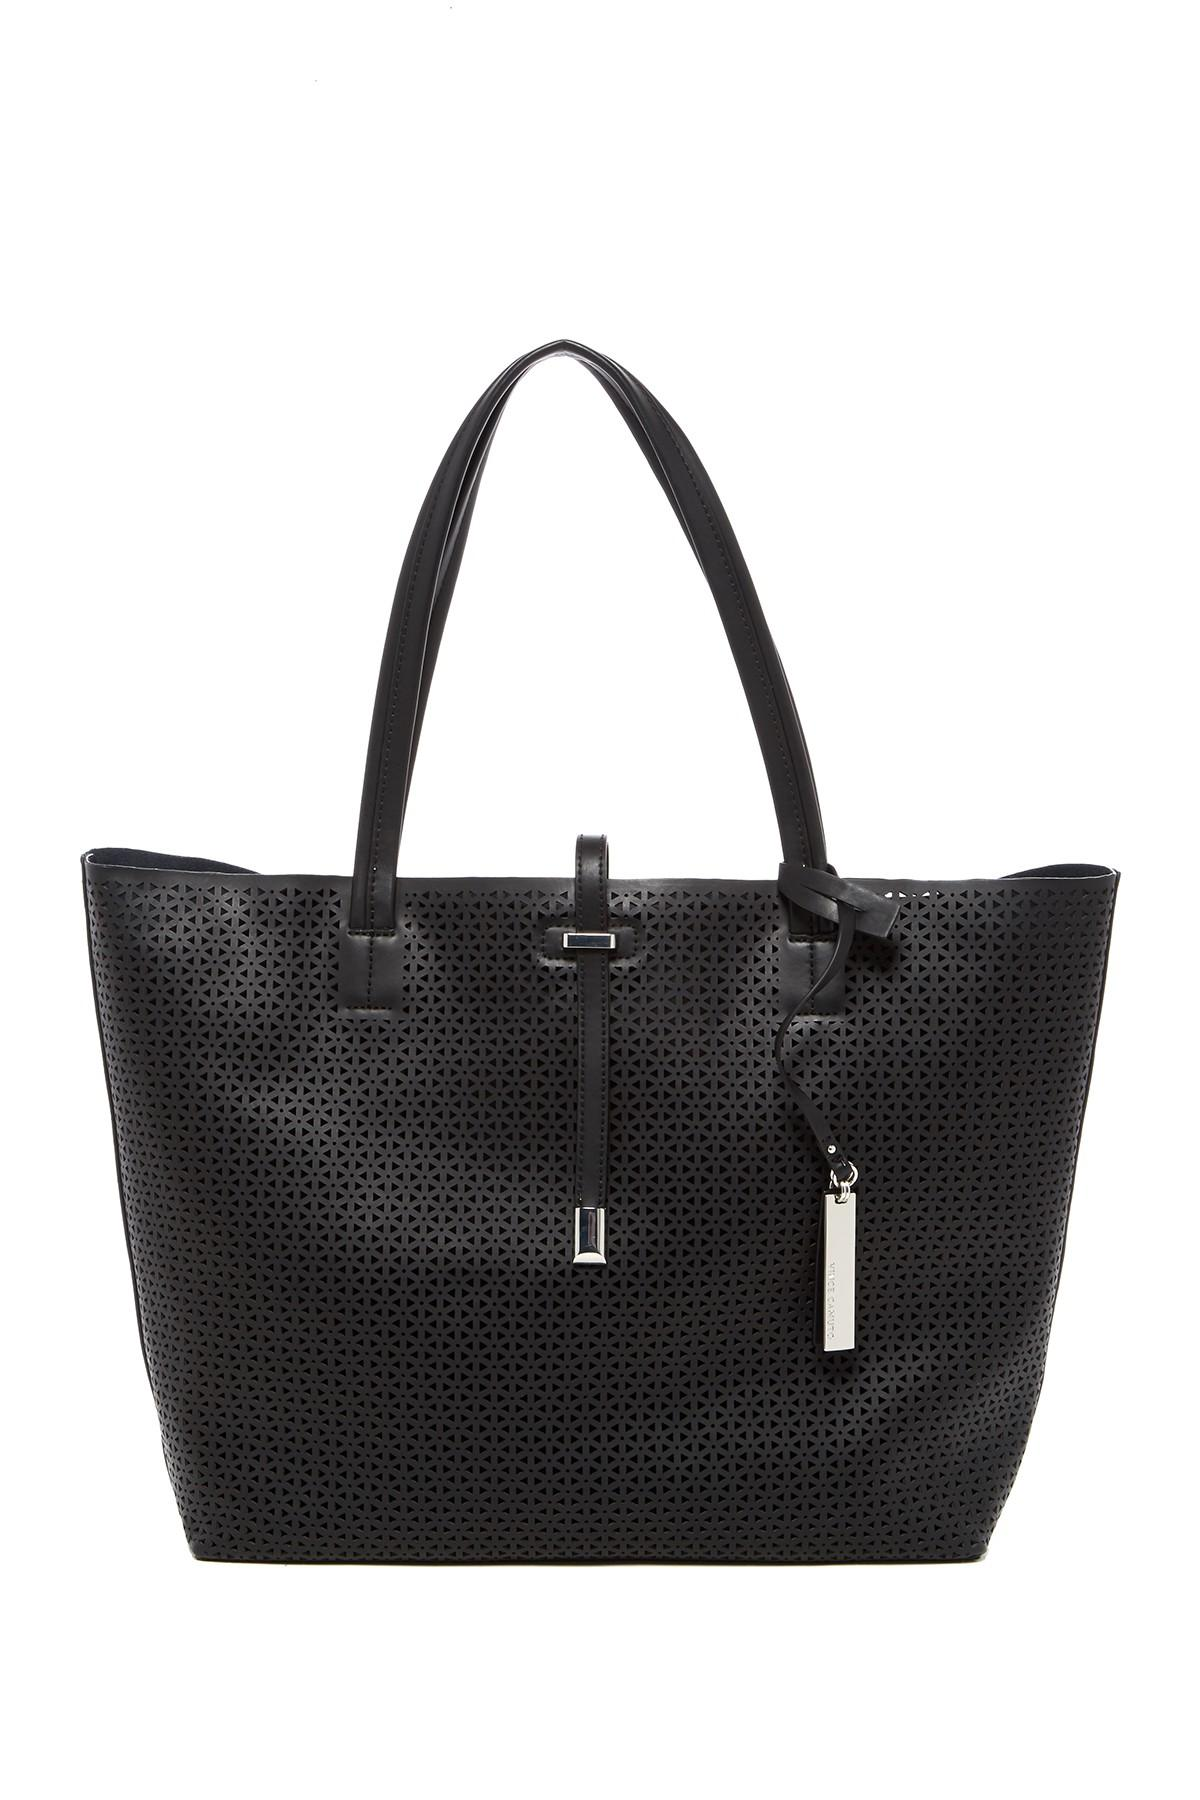 Vince Camuto Leila Laser Cut Leather Tote In Black Lyst